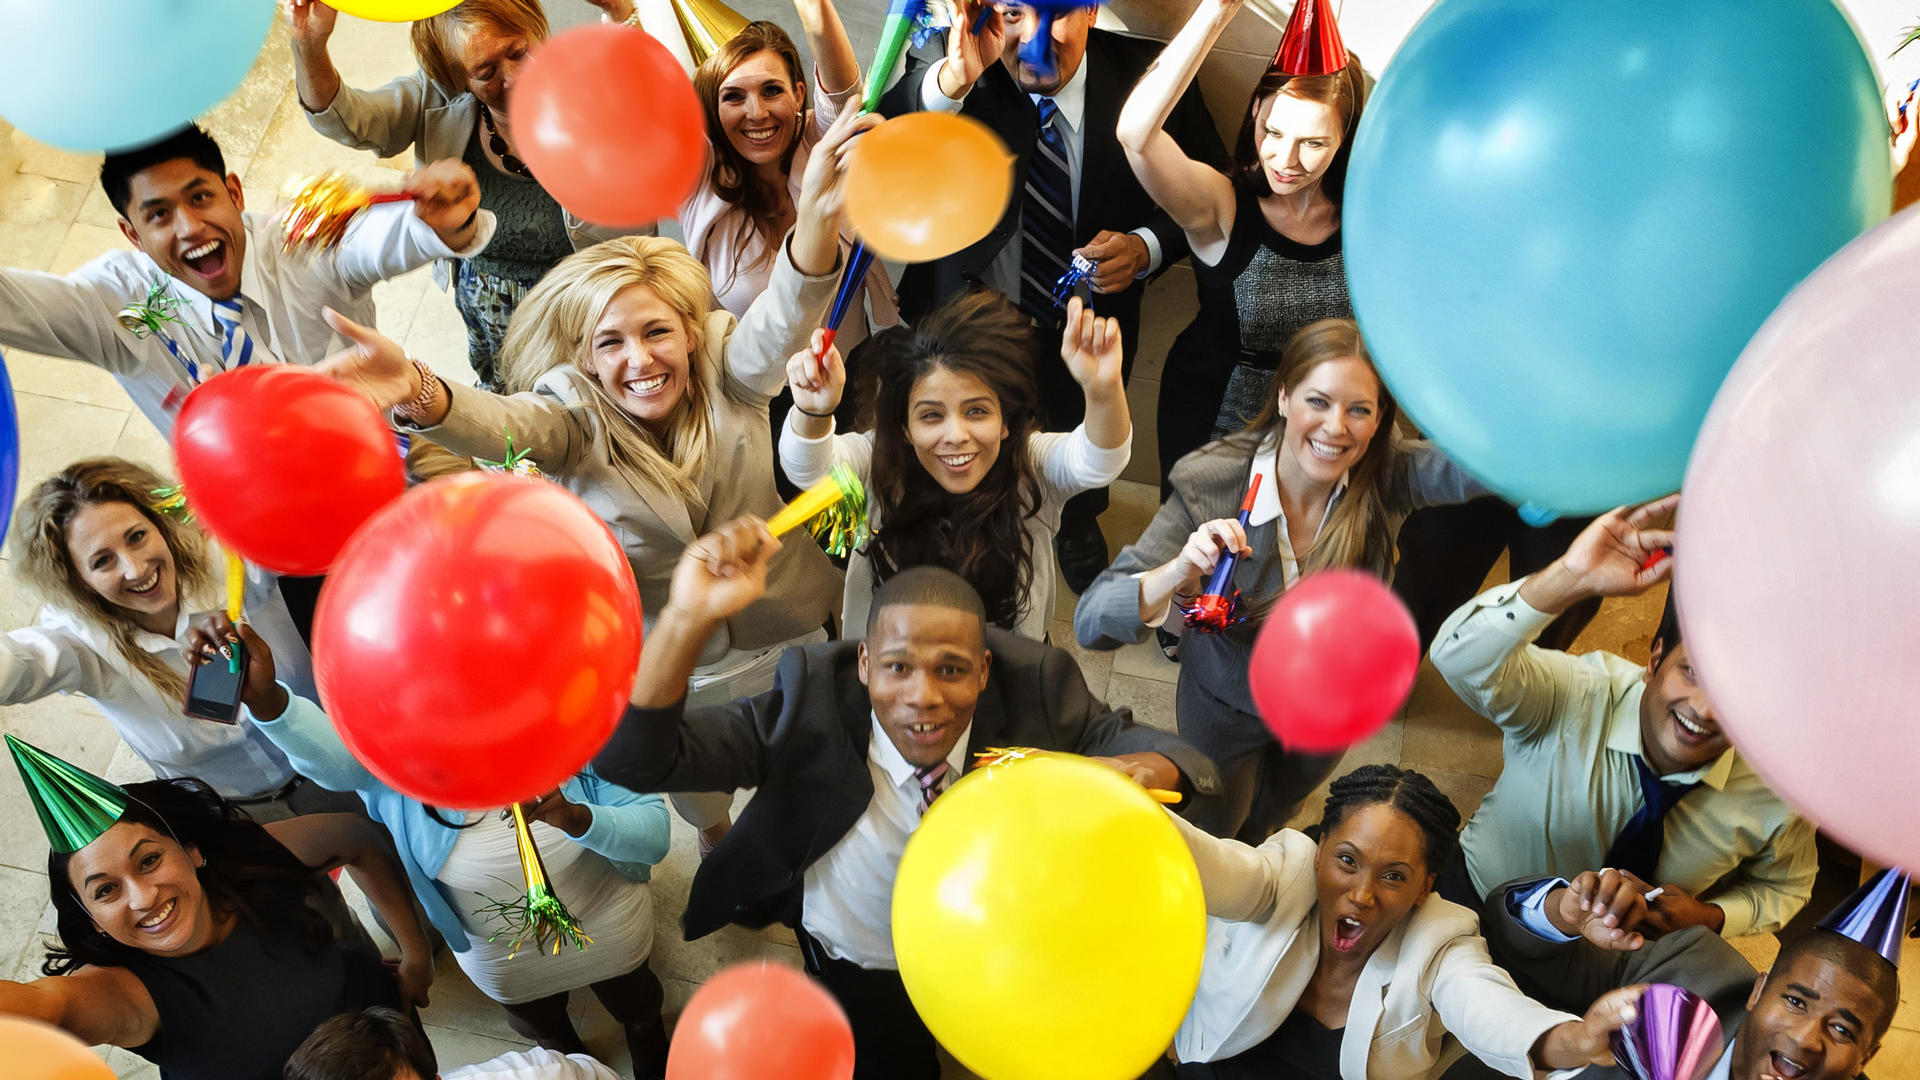 large group of people looking up and celebrating with balloons